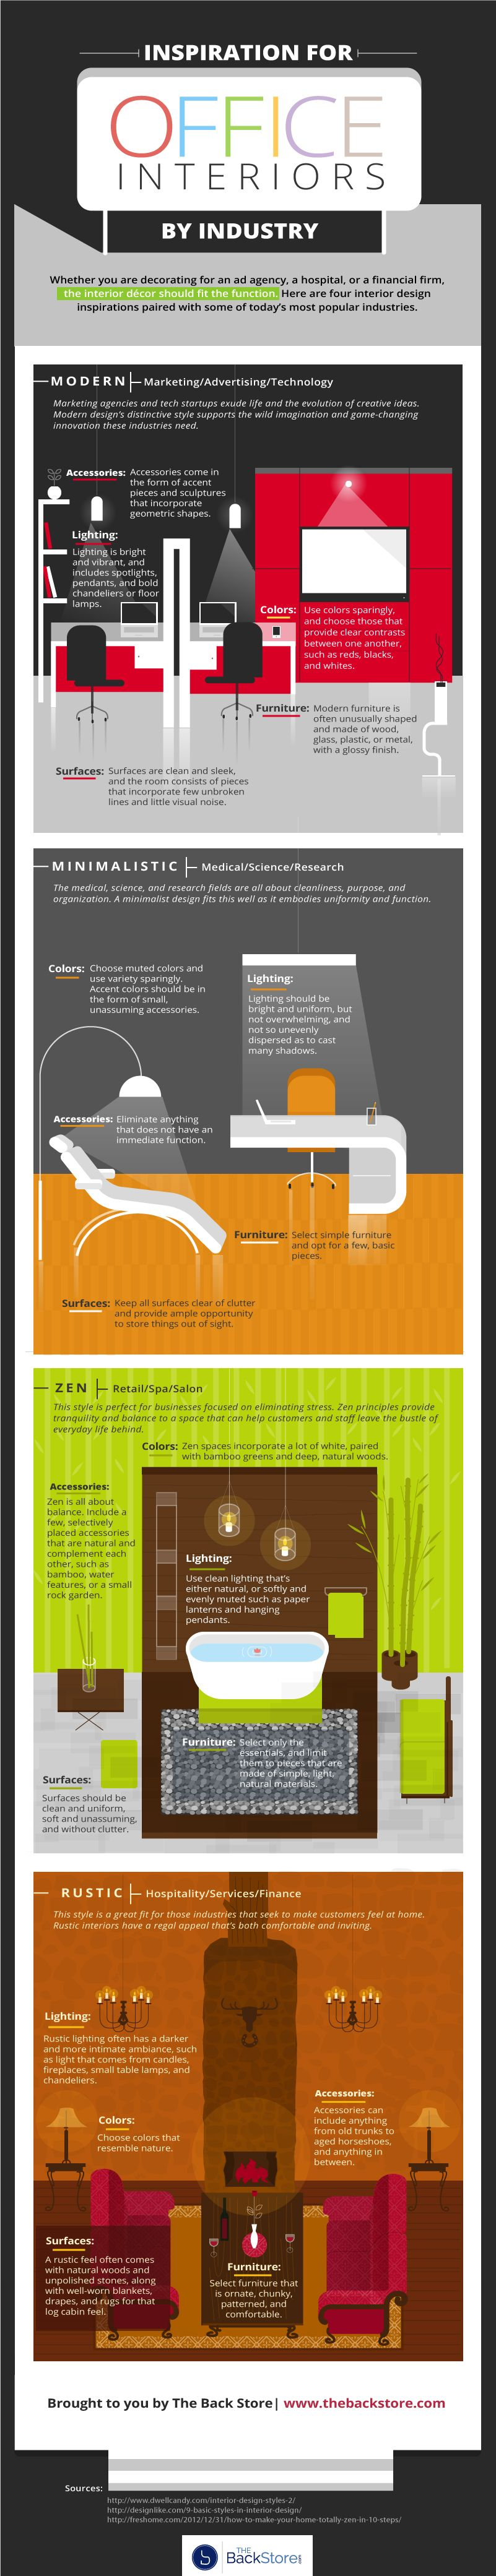 Inspiration for Office Interiors By Industry #Infographic